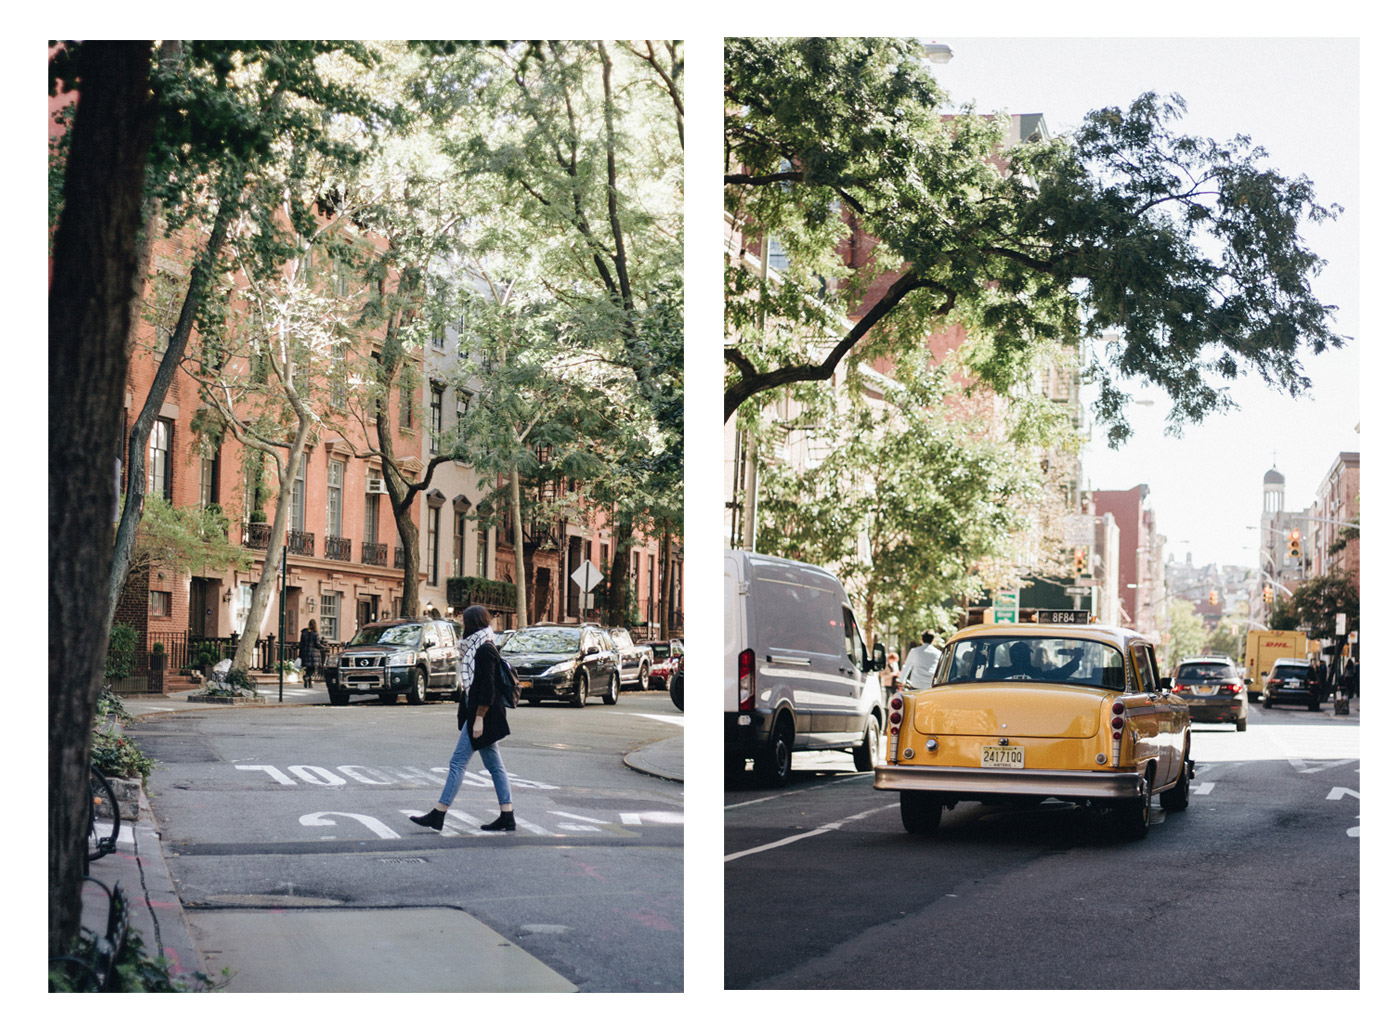 Yellow cab in the street of new york city in west village